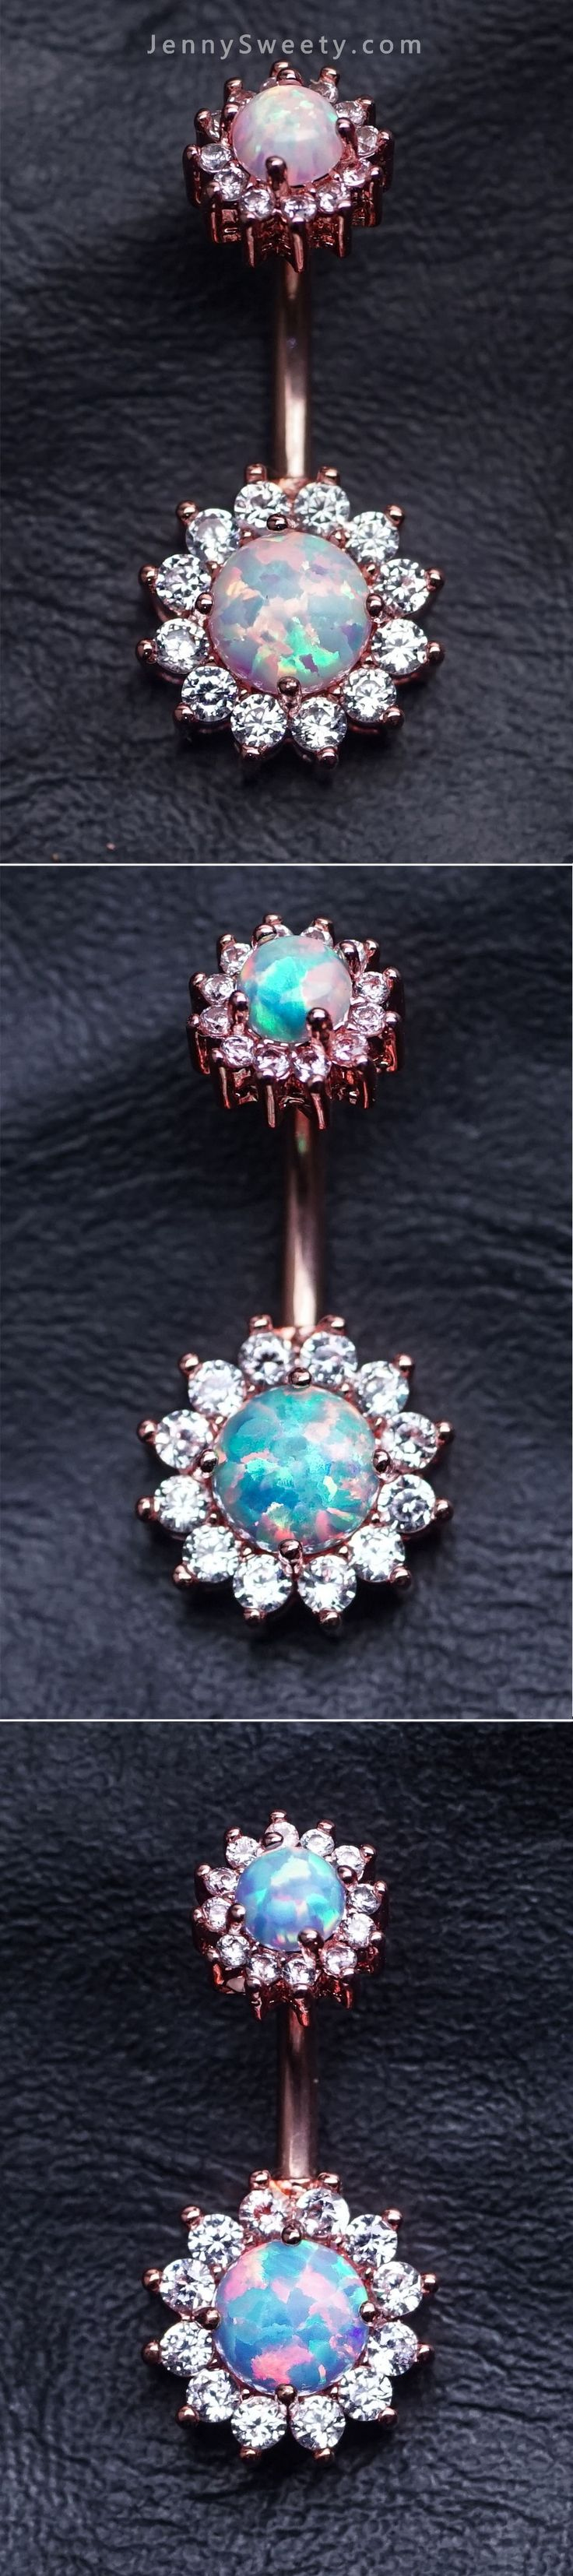 opal belly ring  Come From JennySweety